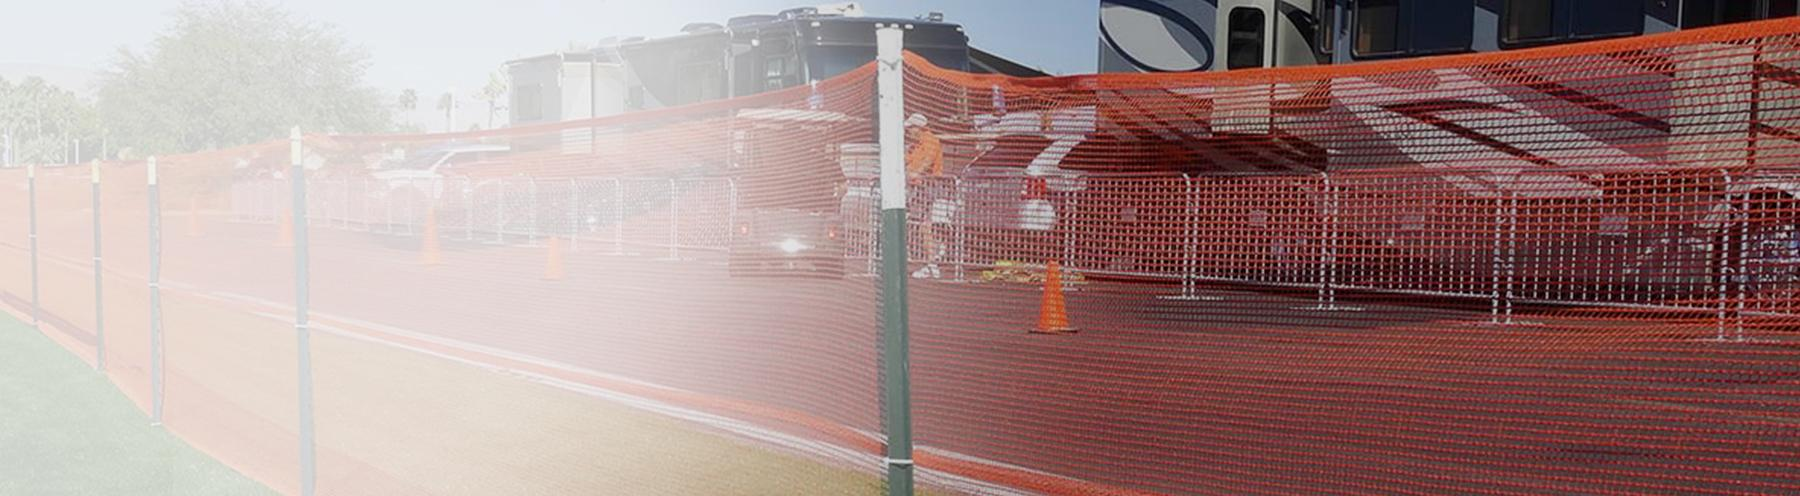 Crowd and Event Barrier Fence Netting